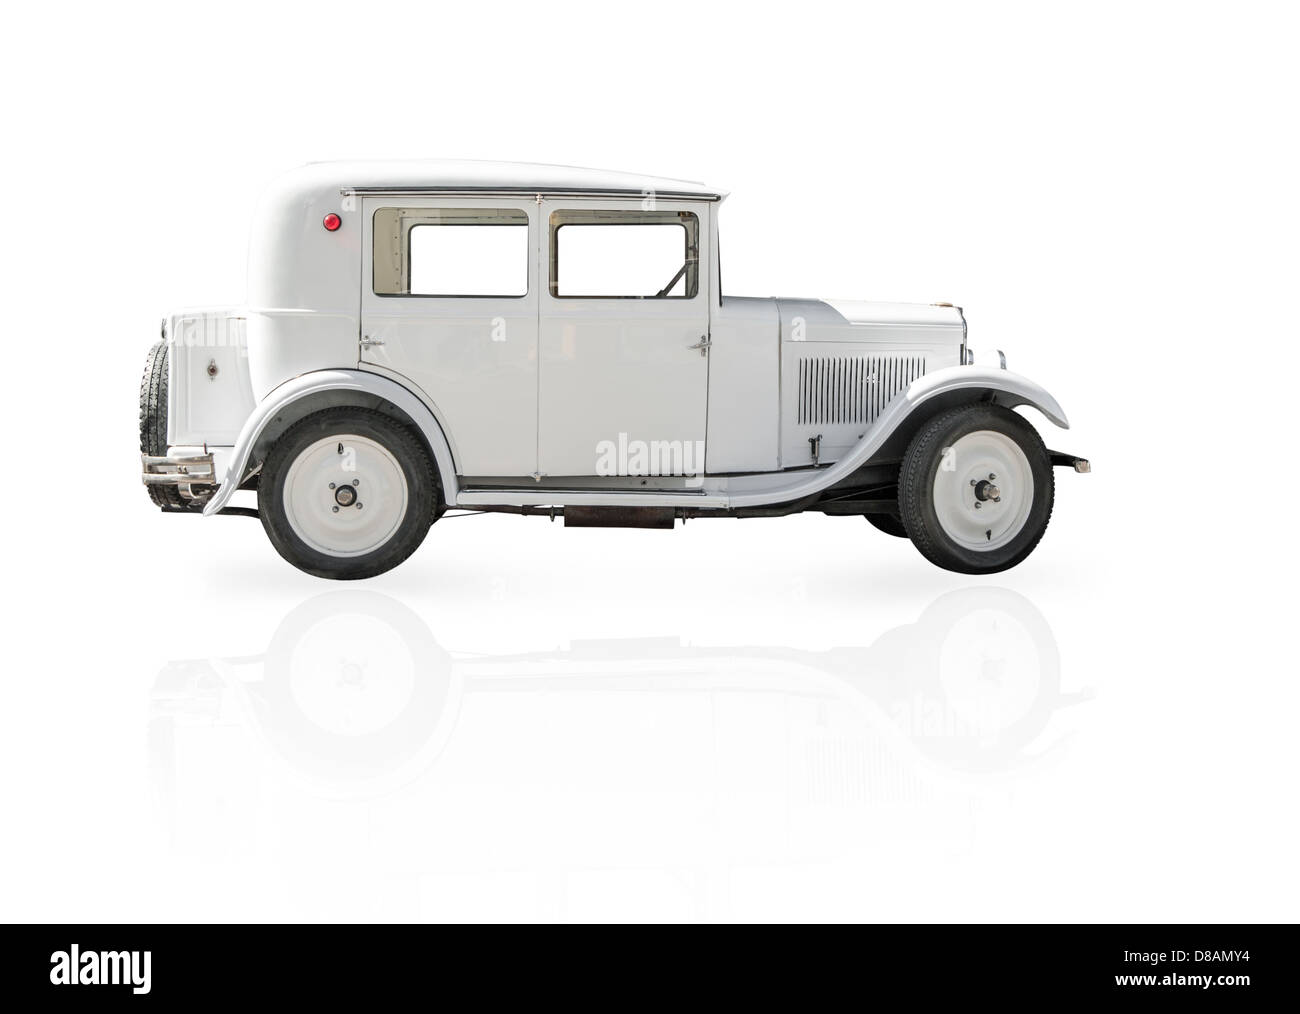 Side view of white retro car isolated on white background. Classic vintage model. Old and rare cars. Means of transport. - Stock Image